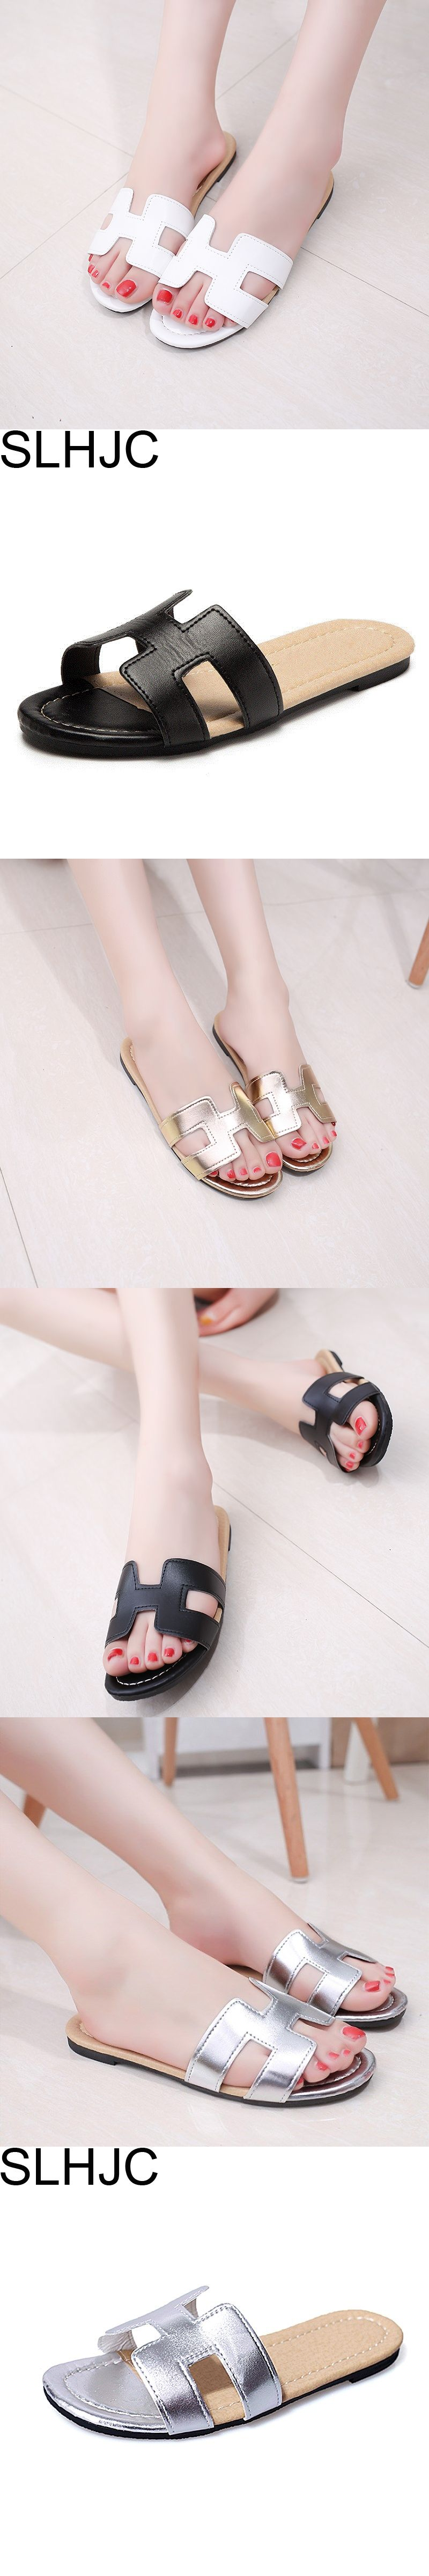 SLHJC 2017 Summer Leather Slippers Women Fashion Flat Heel Home Bedroom  Luxury Shoes Beach Slides Black White Silver Gold Shoes d35702df187a